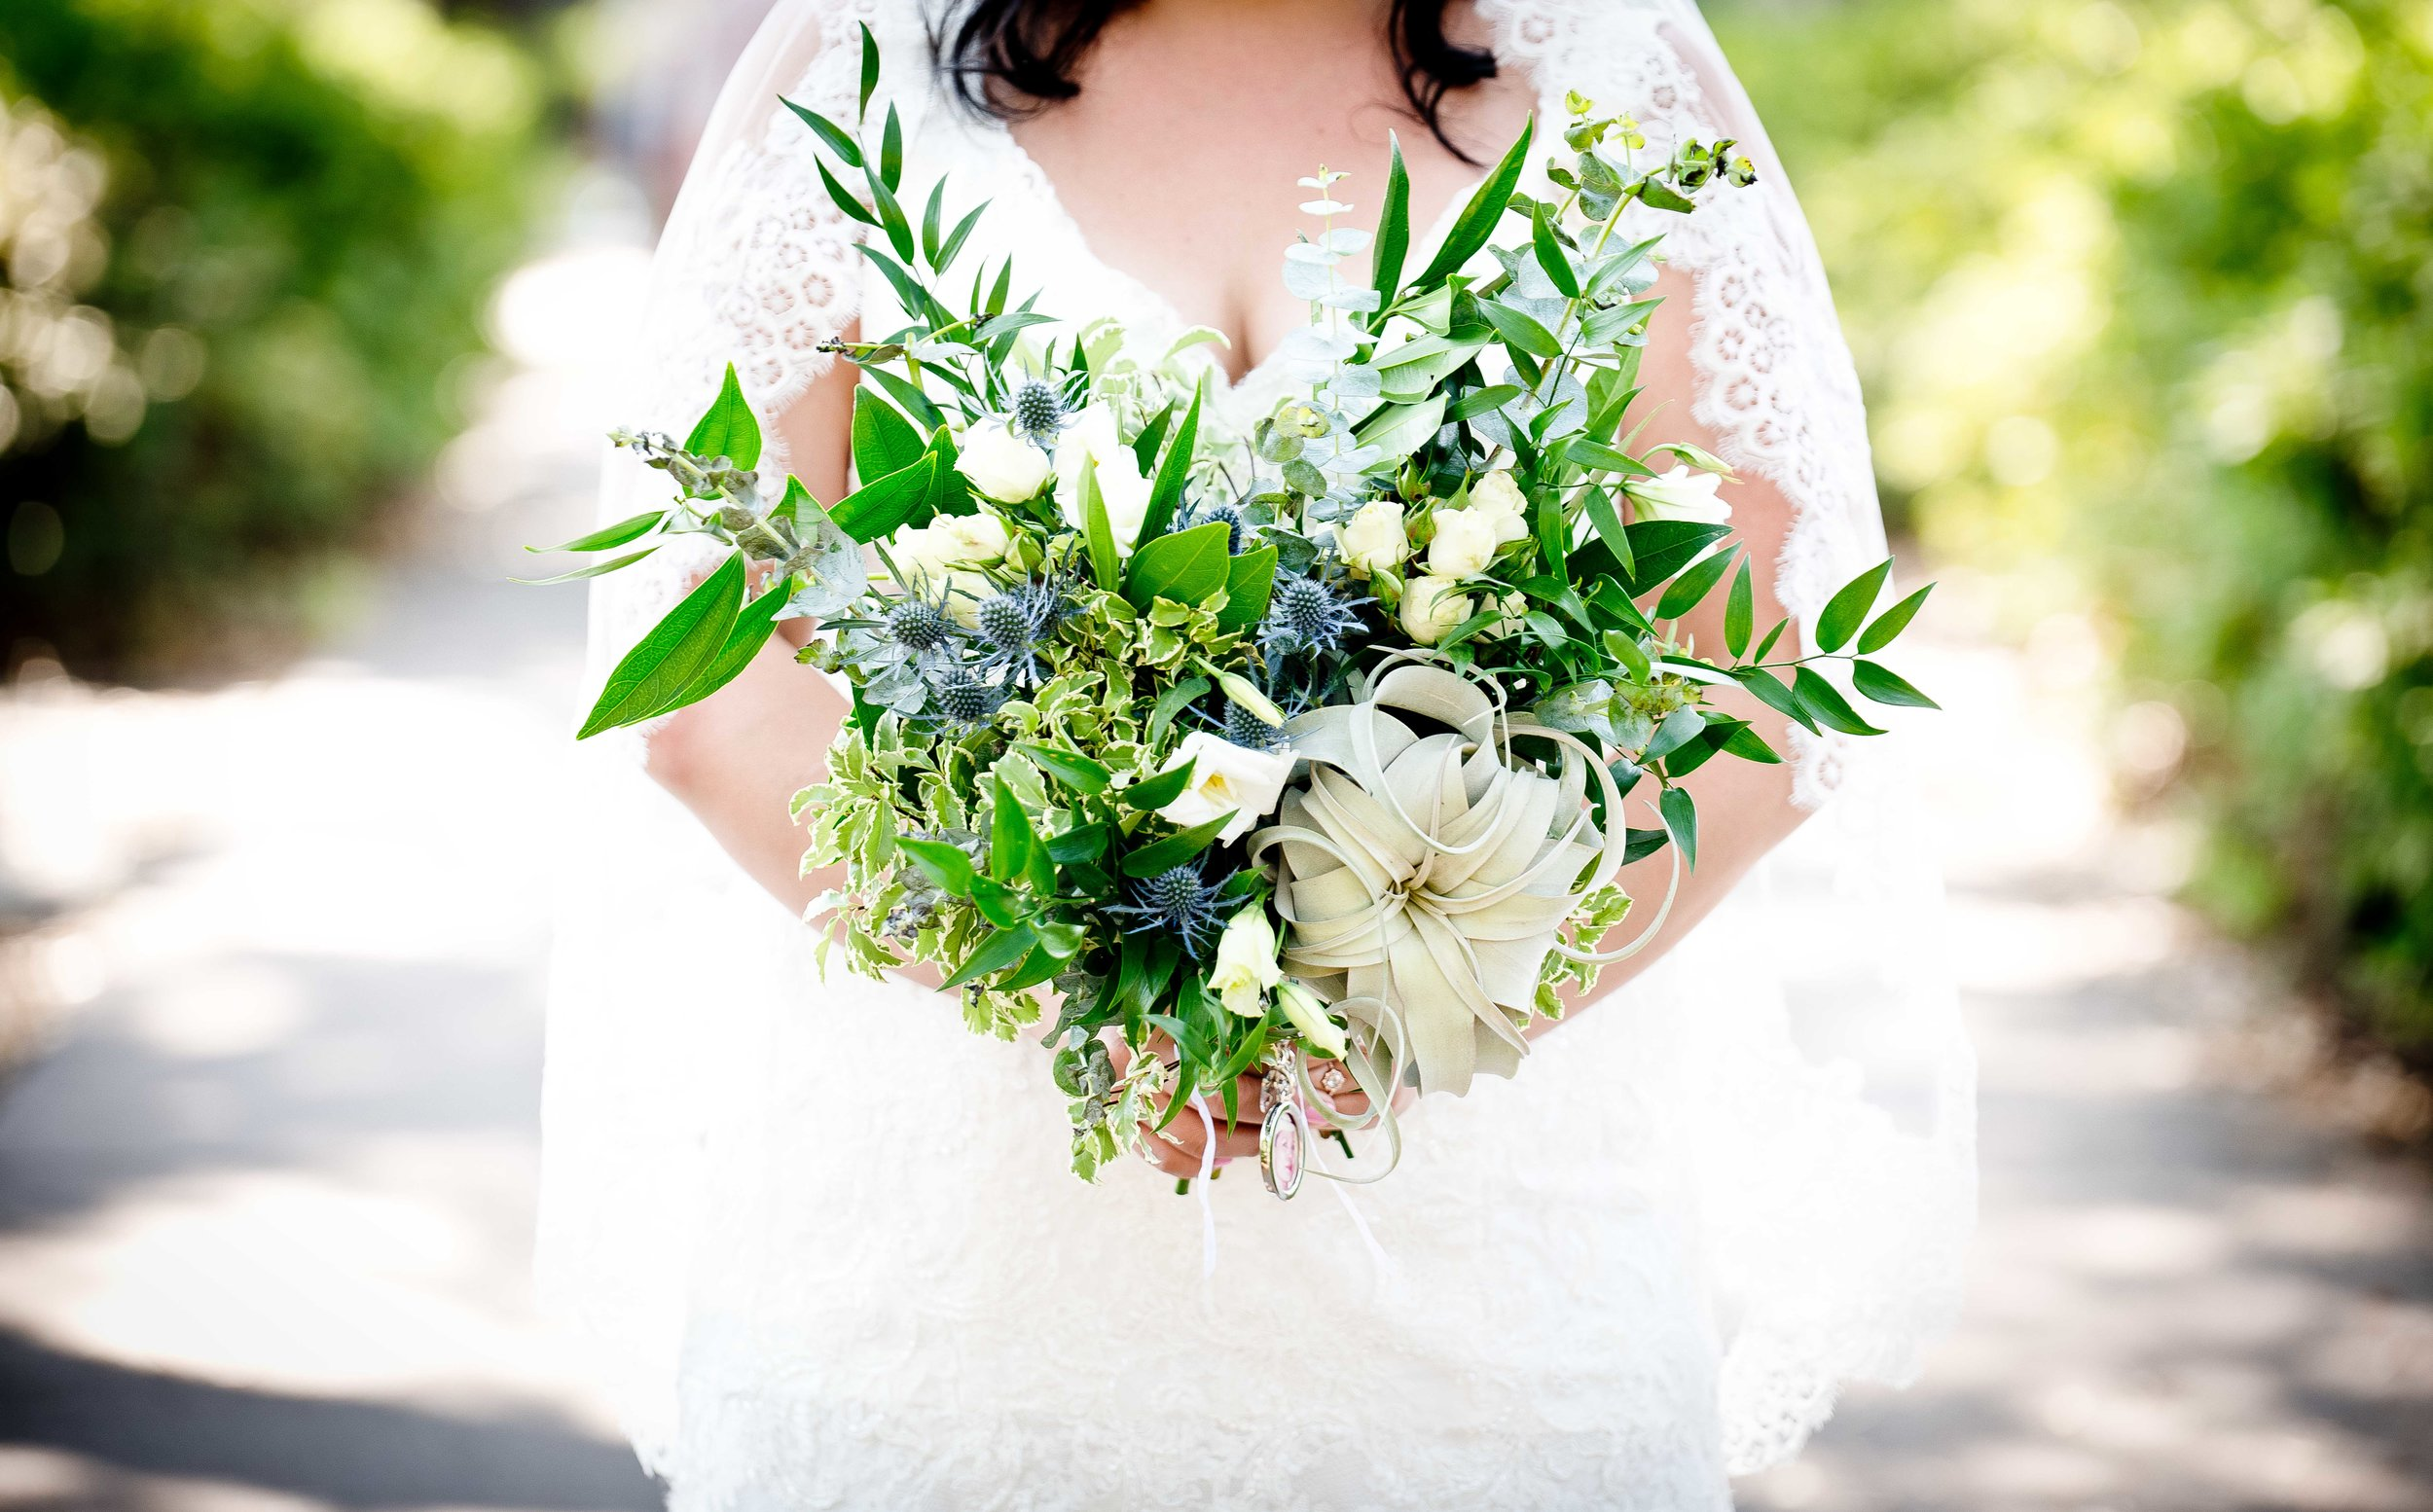 Tina-and-Javin-Organic-Bouquet-Savannah-Weddings-Southern-Bride-Garden-Wedding-Garden-Bouquet-Savannah-Weddings-Greenery-Bouquets-Airplant-Succulent-Bouquets-Organic-Wedding-Garden-Party-Weddings-Gathered-Bouquets-Savannah-Florist-Southern-Florist.jpg